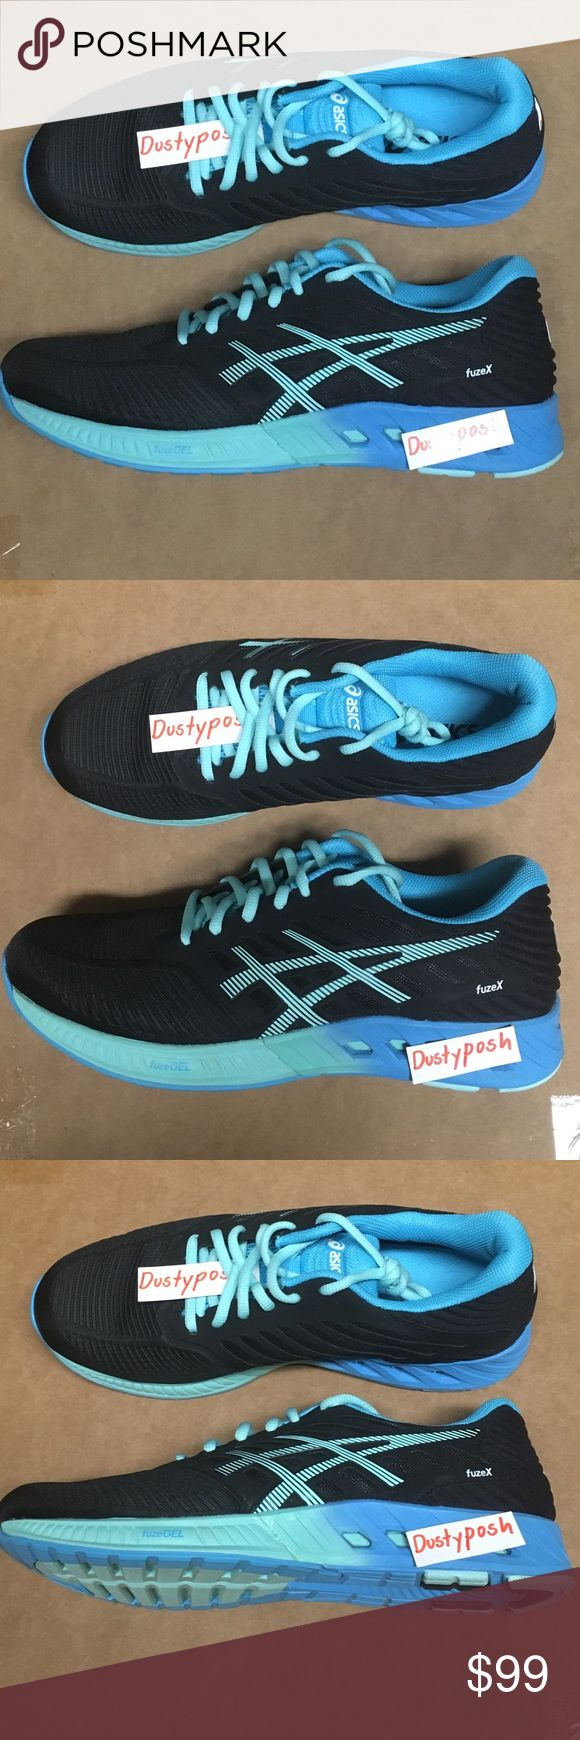 Asics FuzeX Running Sneakers Shoes Black Blue New Size 8 1/2, floor model. Asics Shoes Sneakers